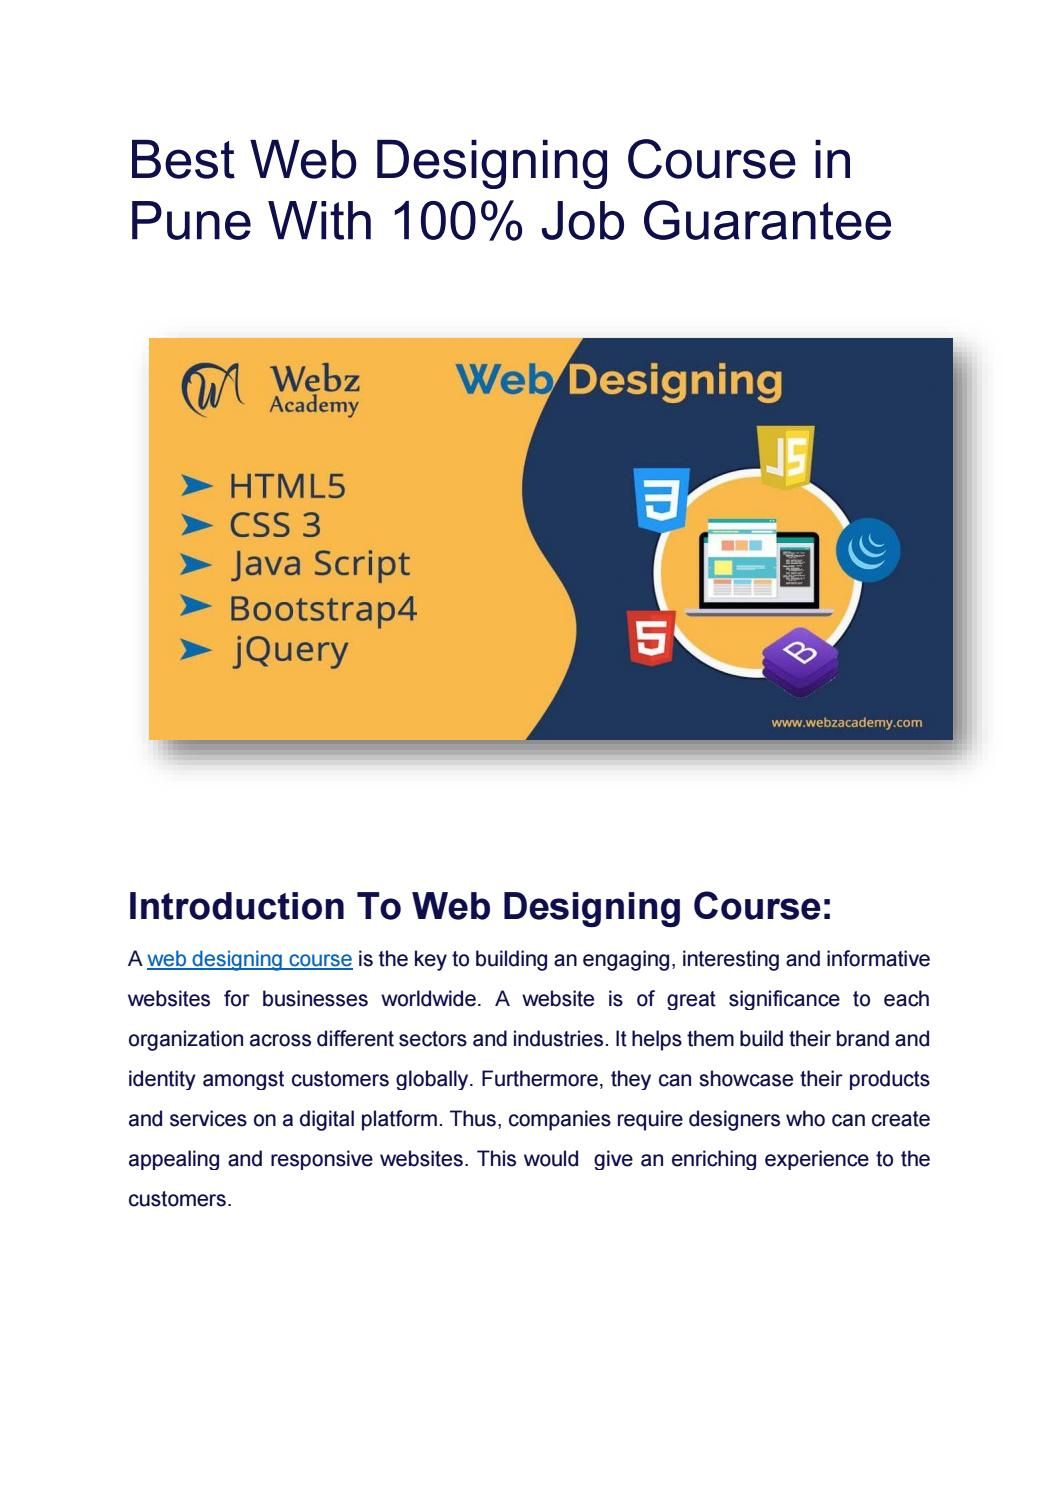 Best Web Designing Course In Pune With 100 Job Guarantee By Nilamshaikh125 Issuu